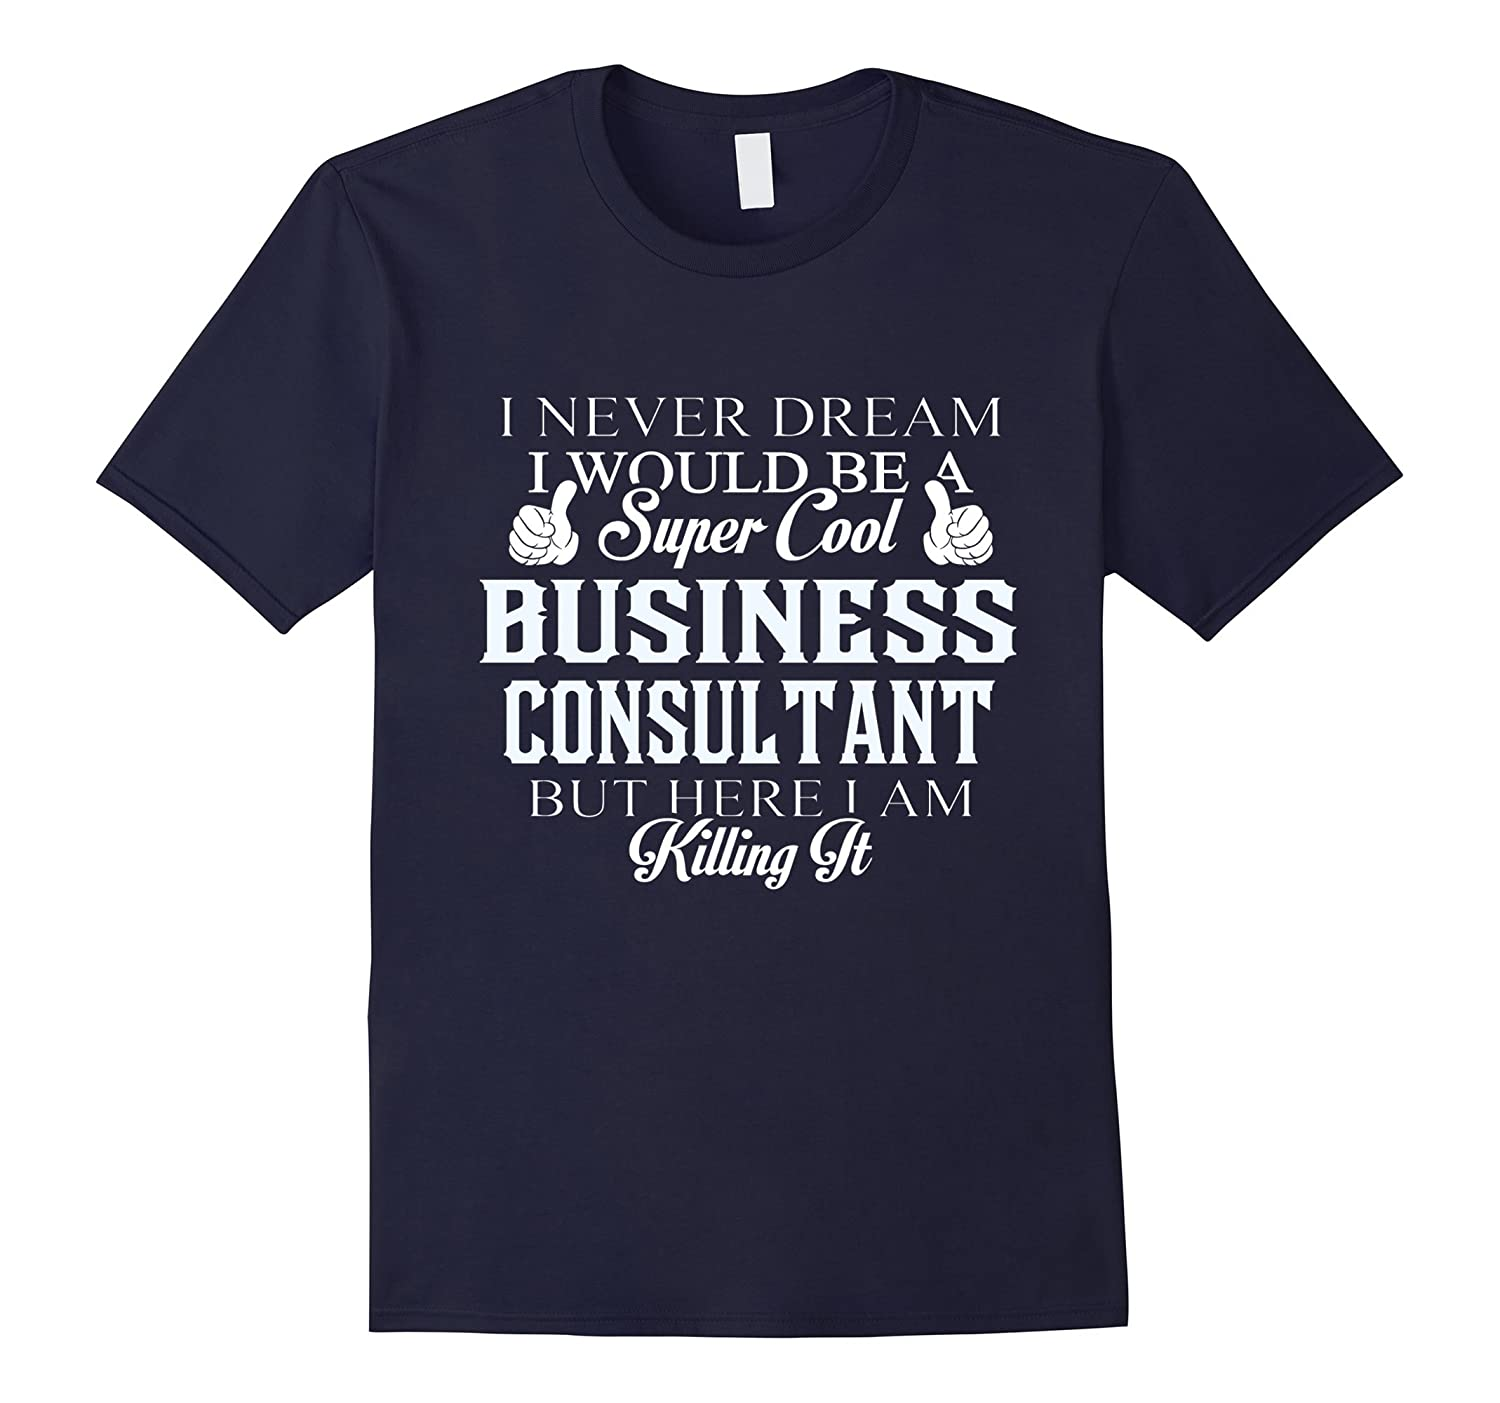 Dreamed would be super cool Business consultant killing it-Vaci